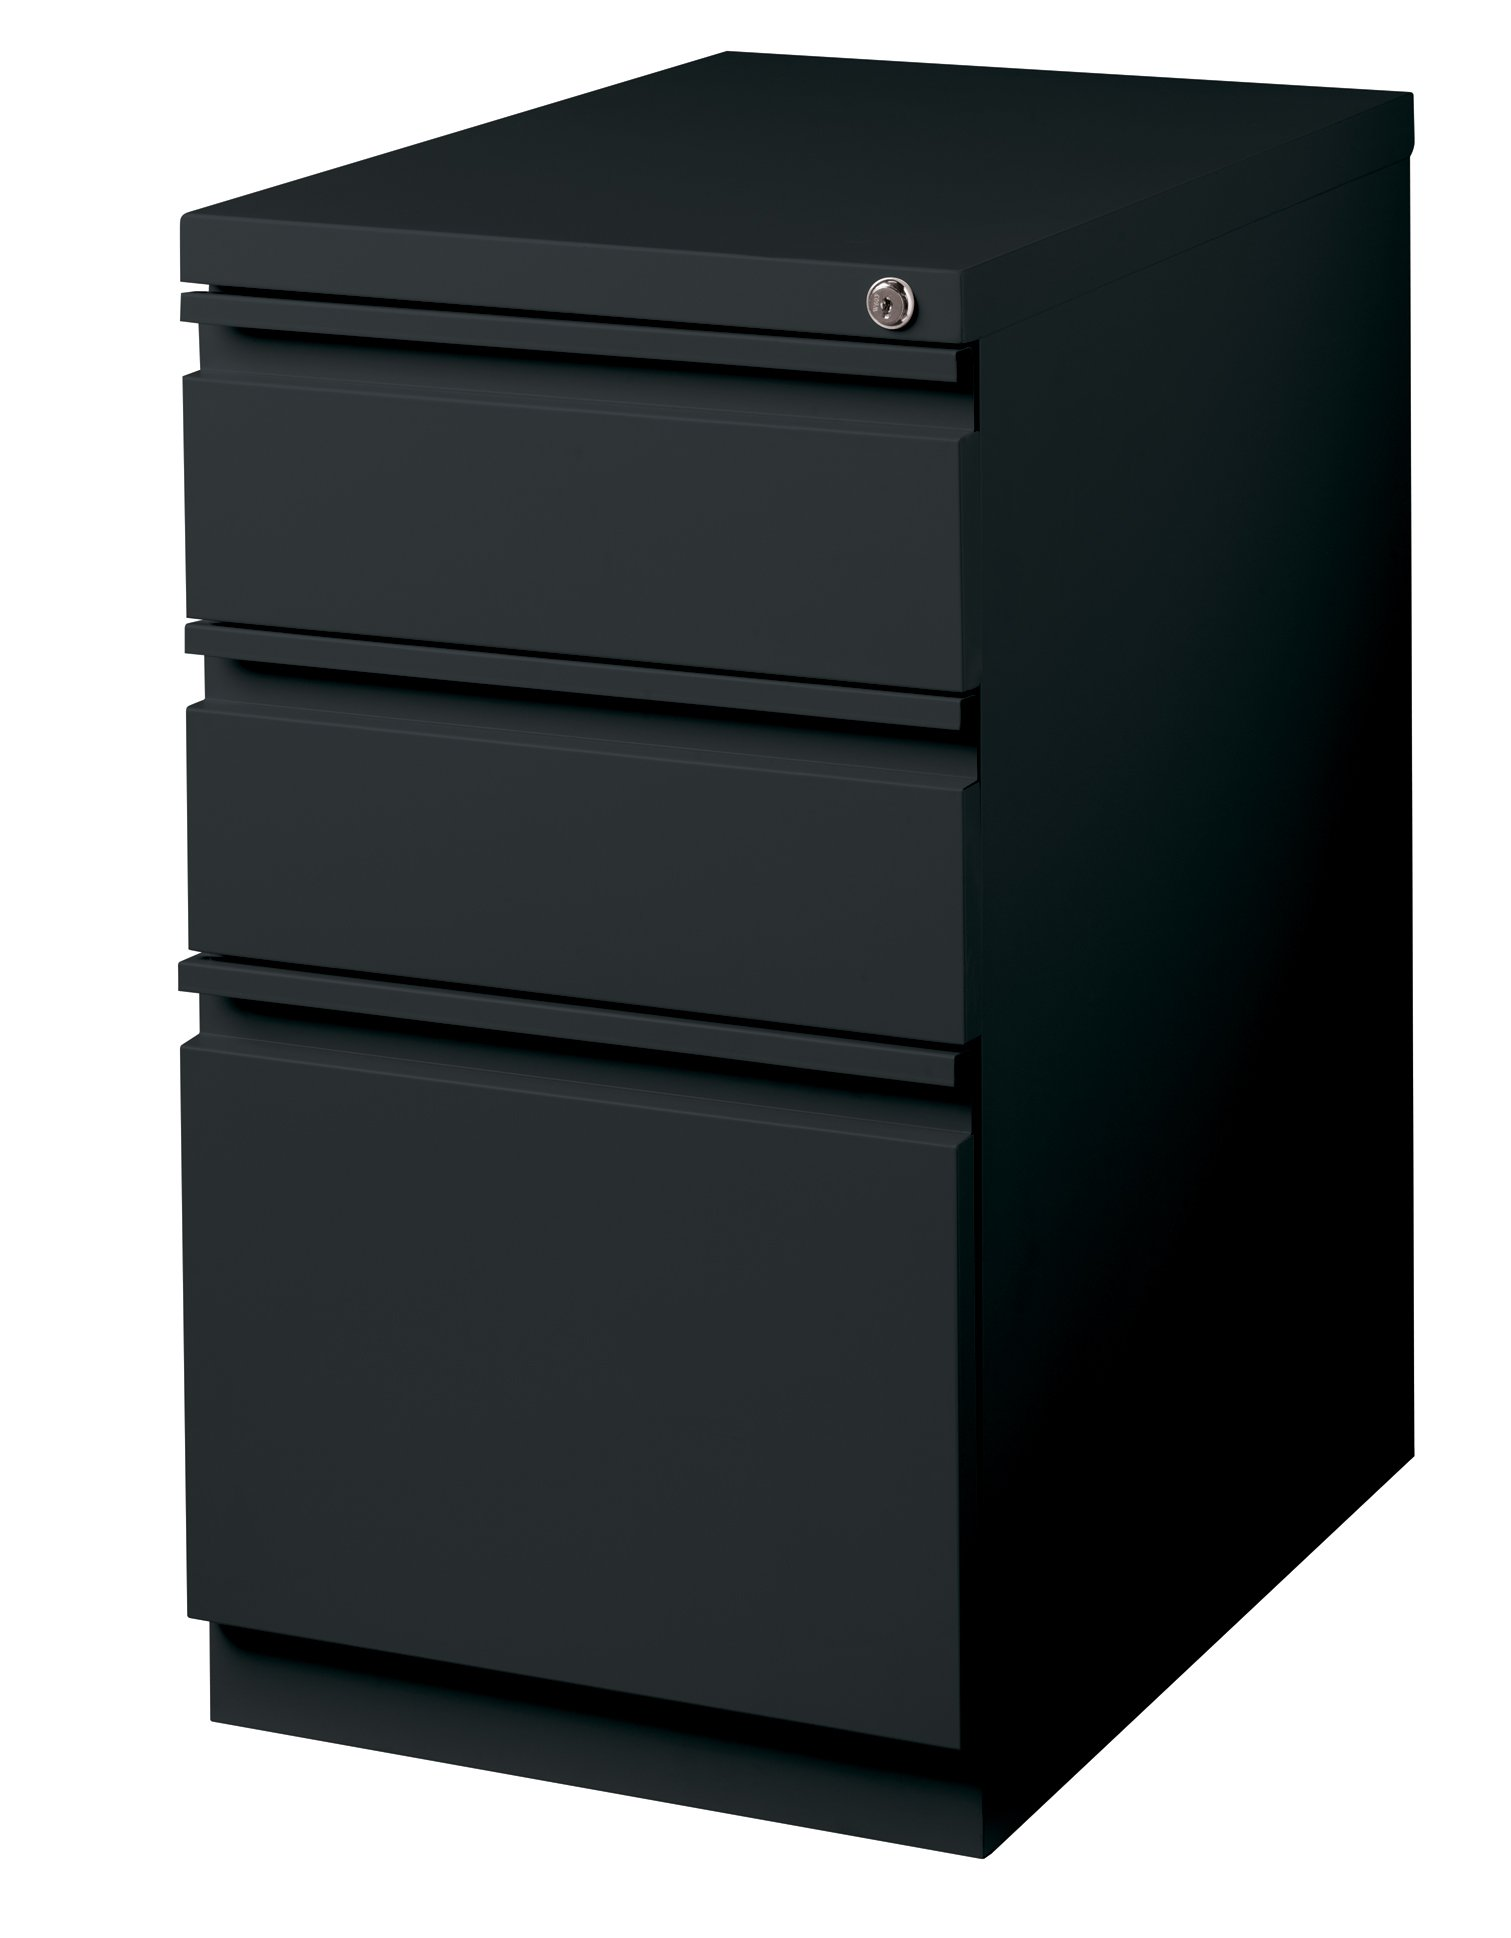 Office Dimensions 23'' Mobile File Cabinet with wheels - Drawers (2 storage, 1 file)